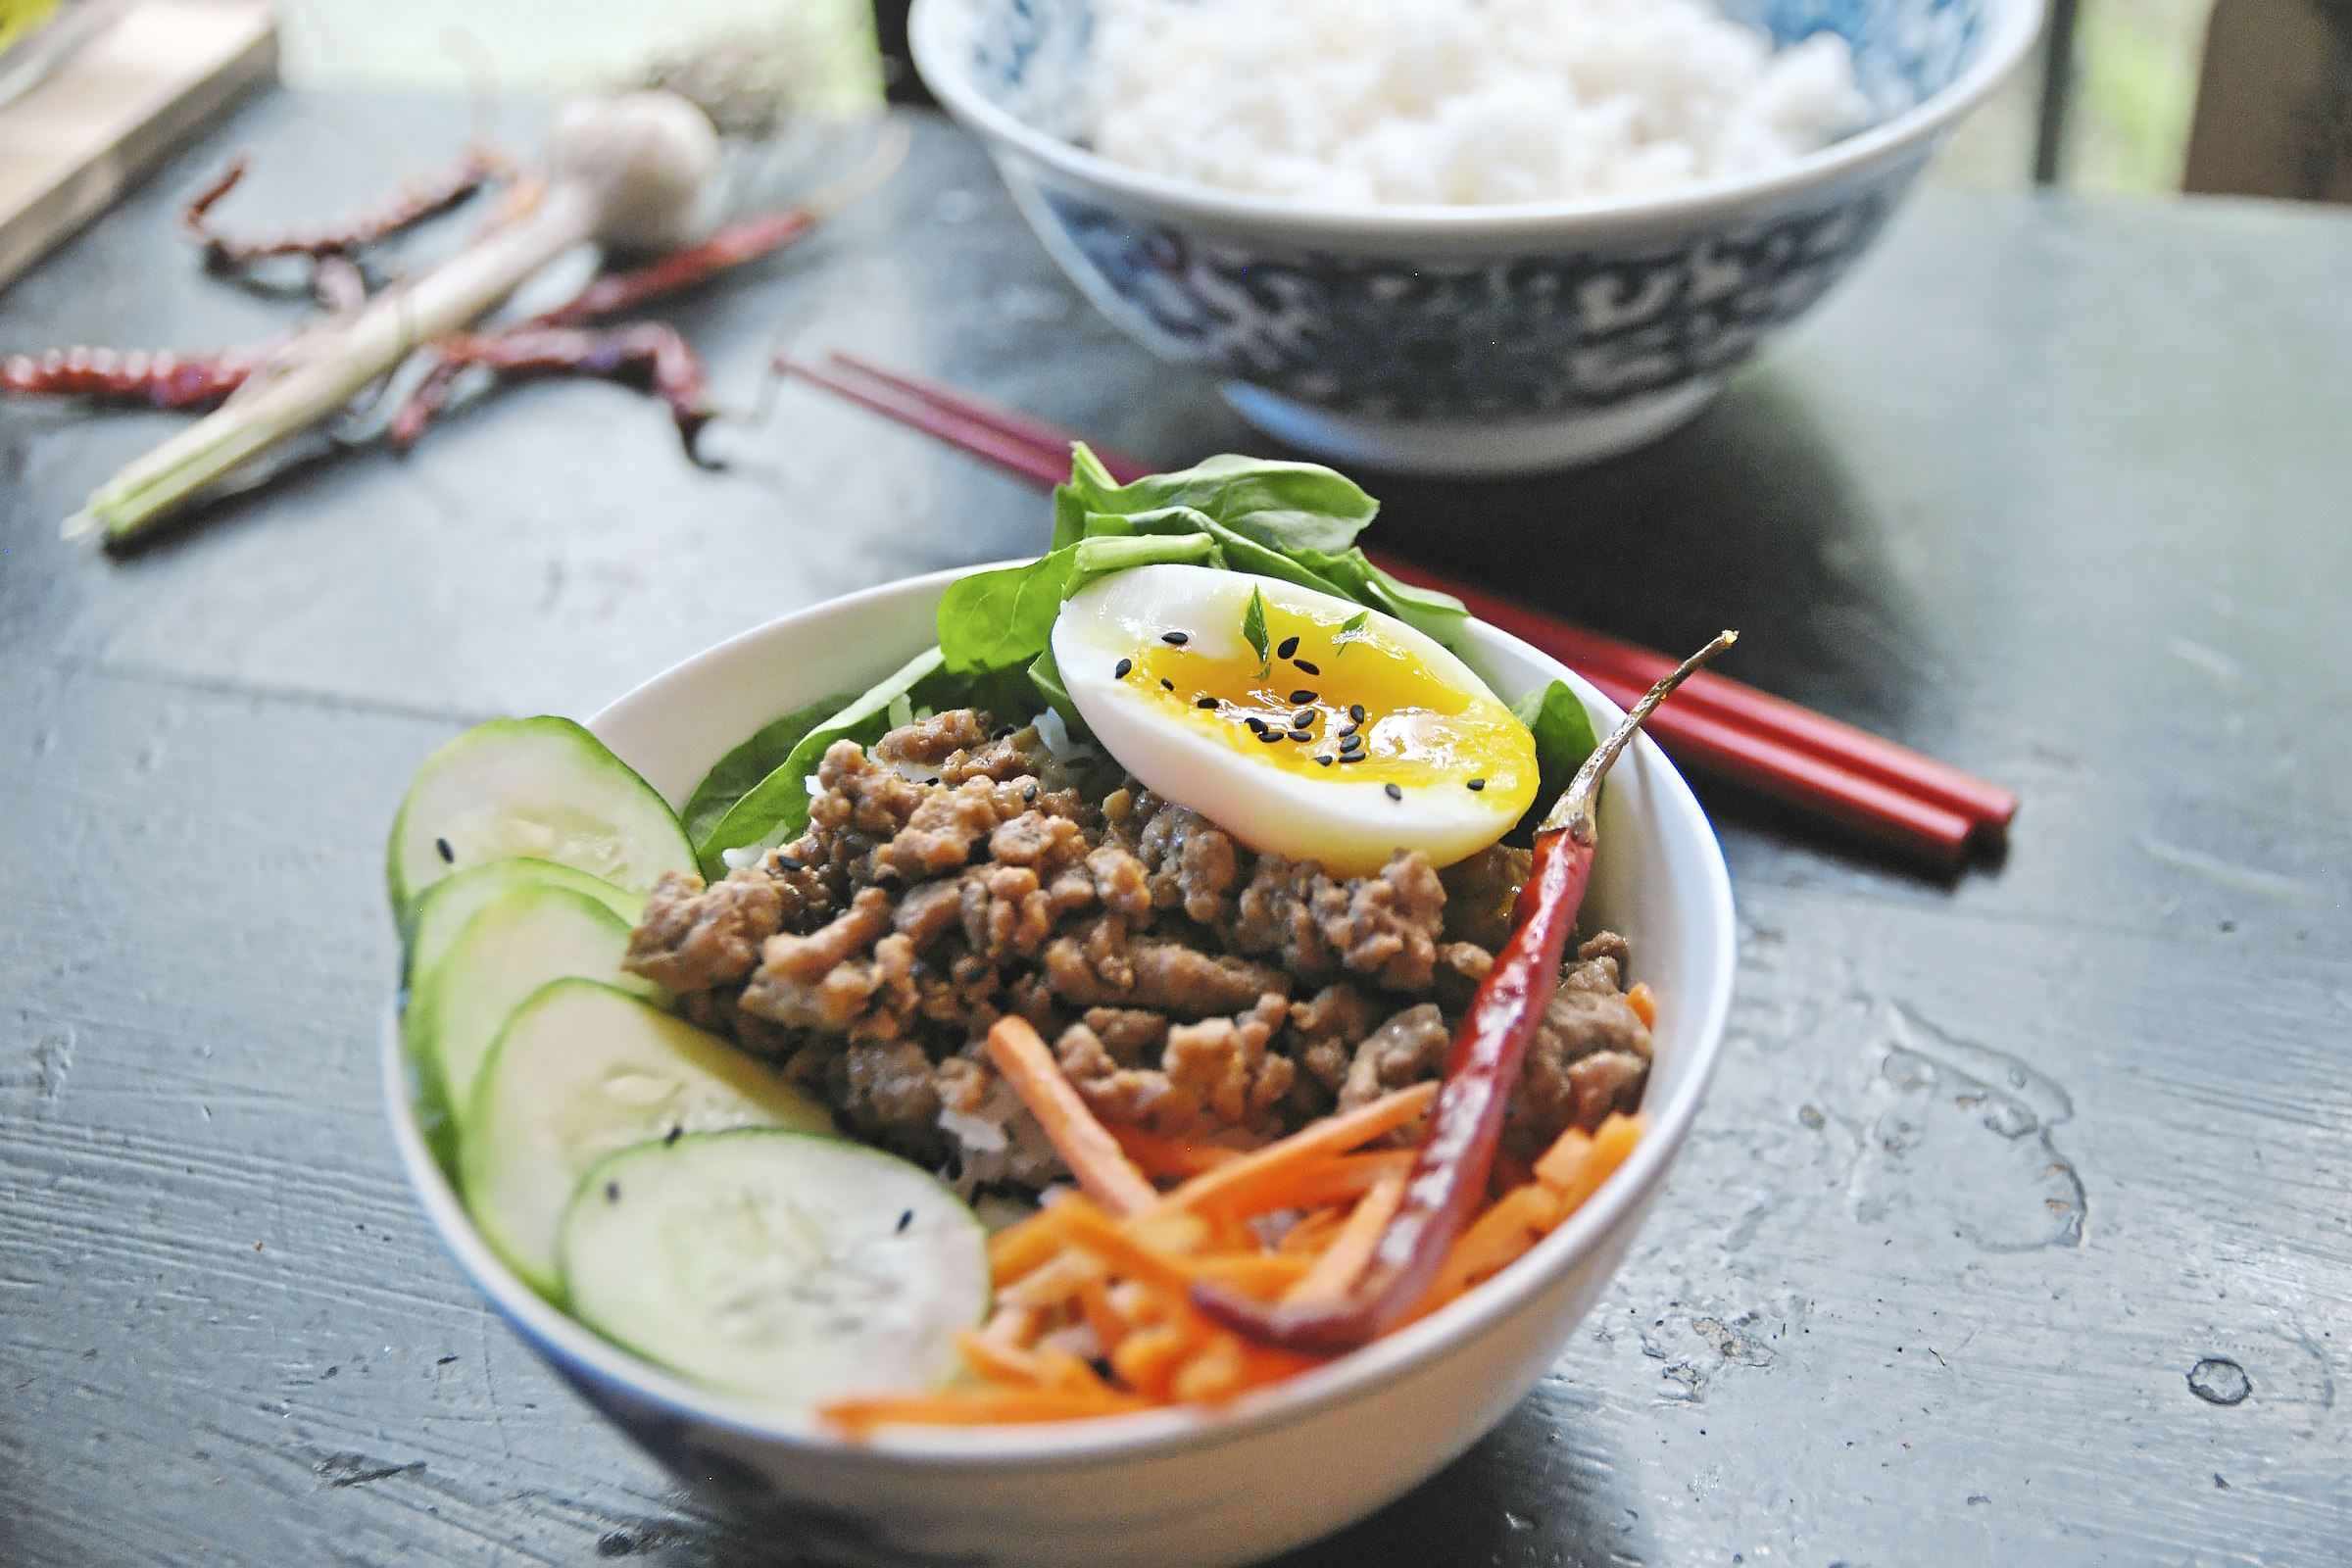 pork-rice-bowl-1 Garlic-Chili Pork Rice Bowl is a great platform for colorful vegetables and a six-minute egg.